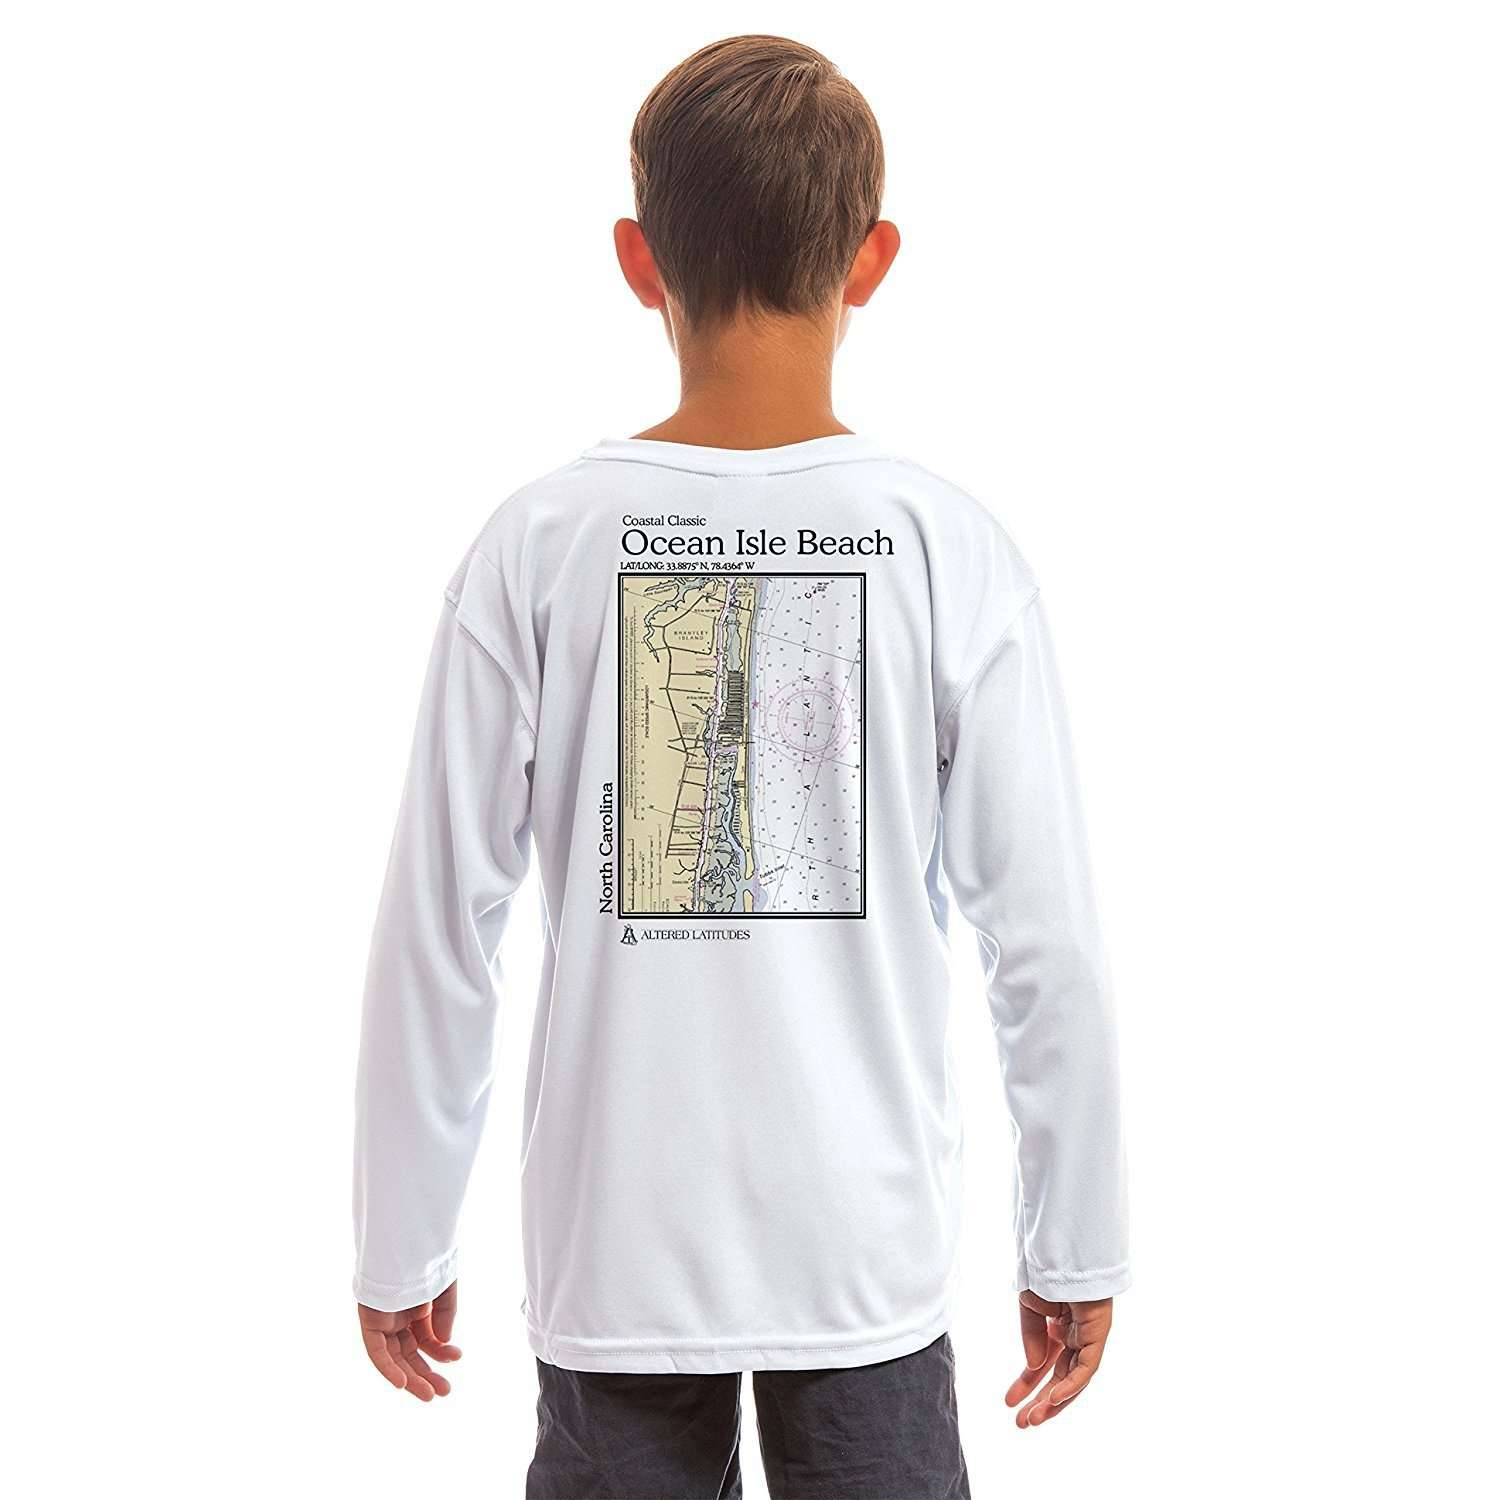 Altered Latitudes Coastal Classics Ocen Isle Beach Youth UPF 50+ UV/Sun Protection Long Sleeve T-Shirt